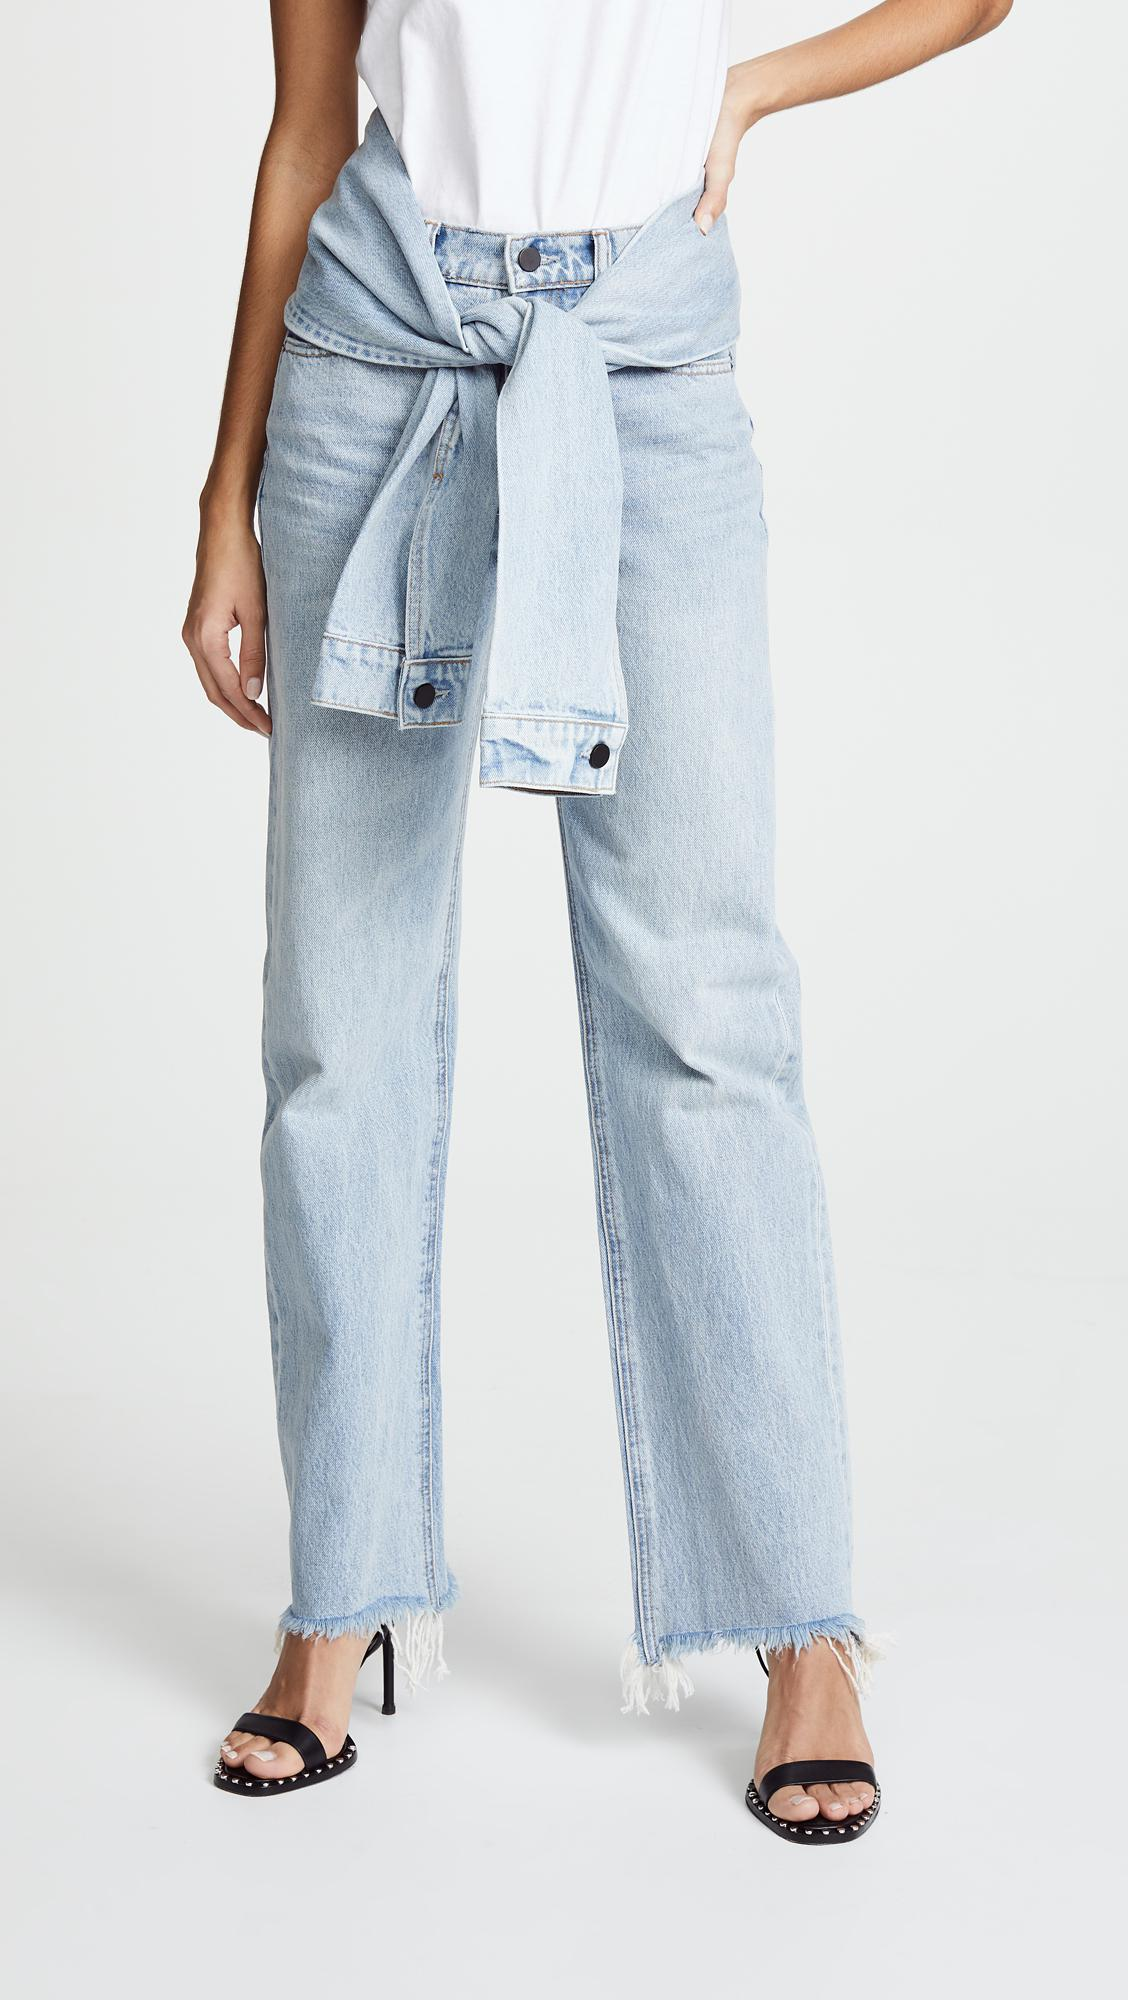 Stack Tie Tie-front Distressed High-rise Straight-leg Jeans - Light denim Alexander Wang yKzdr8l